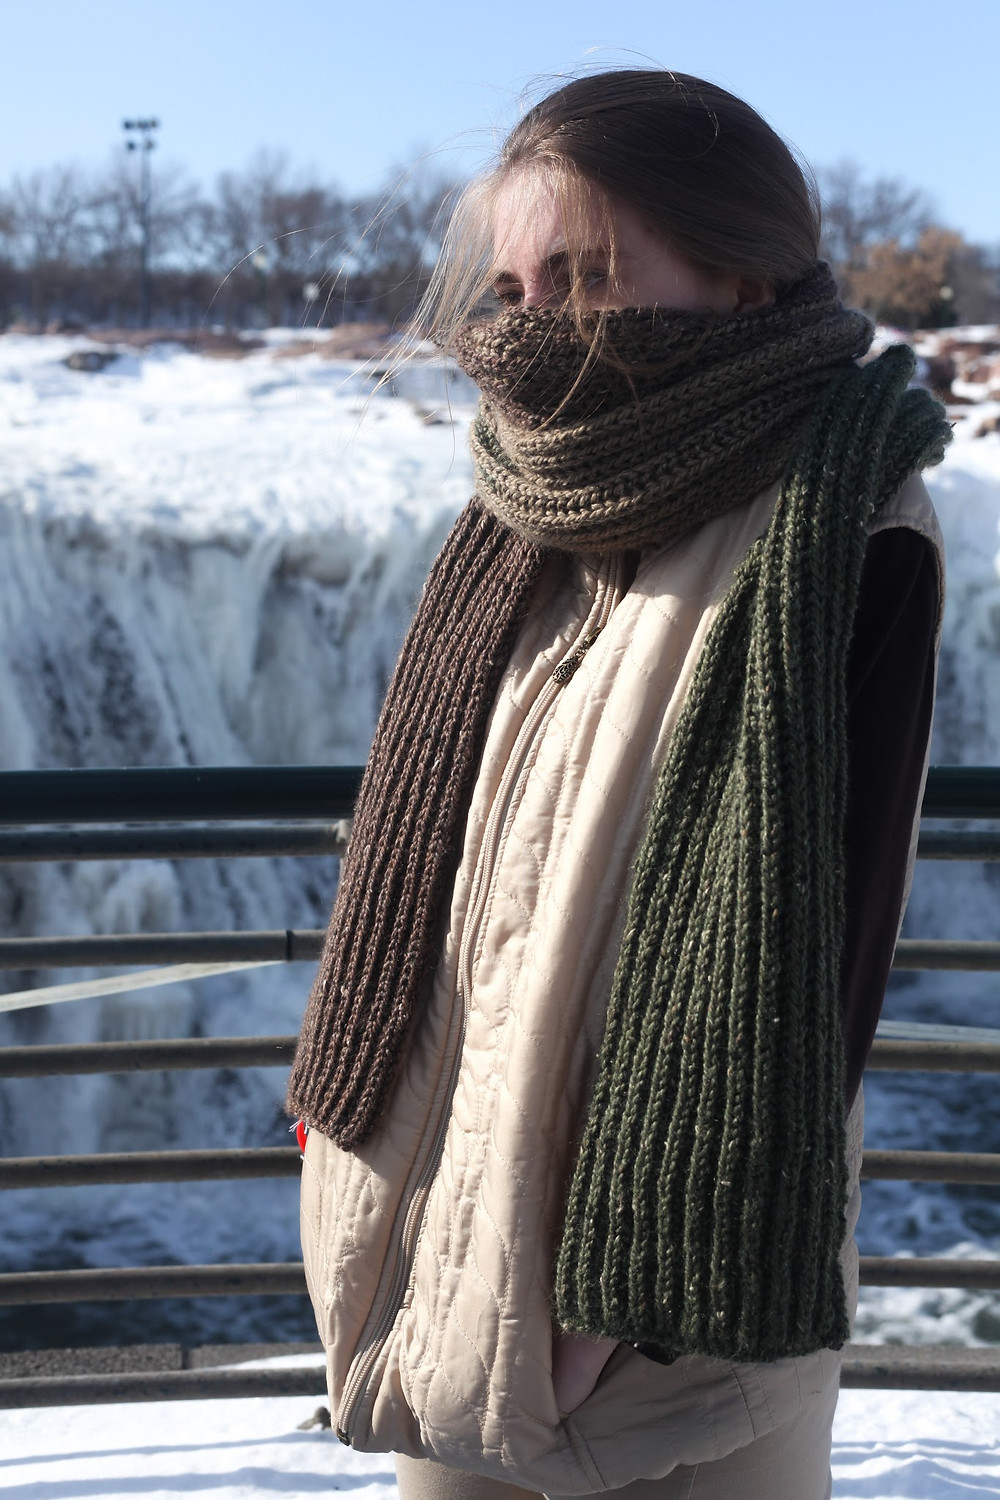 In the Basic Brioche Knitting Class, students will learn all the skills needed to knit my Giant Color Shift Brioche Scarf pattern